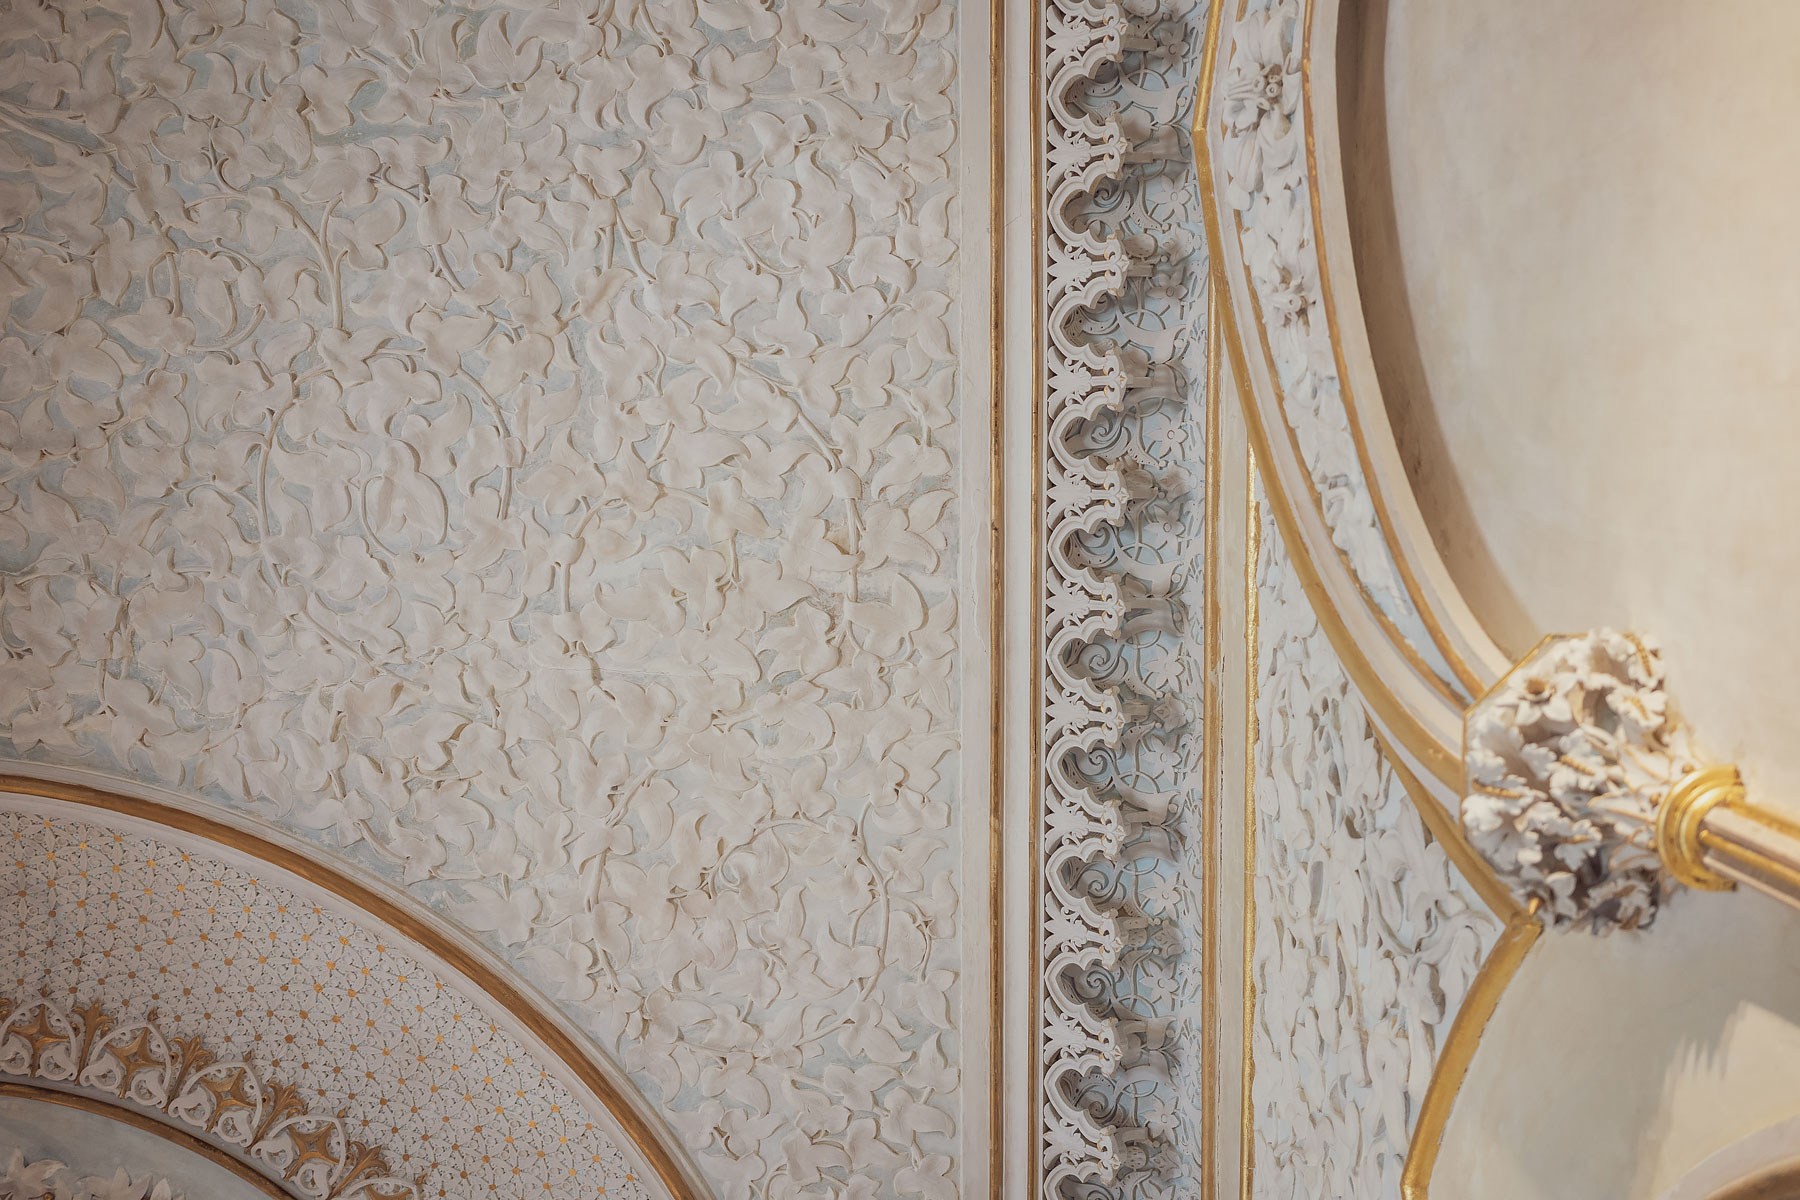 Slow travel to Lisbon | Monserrate Palace details© Soonafternoon